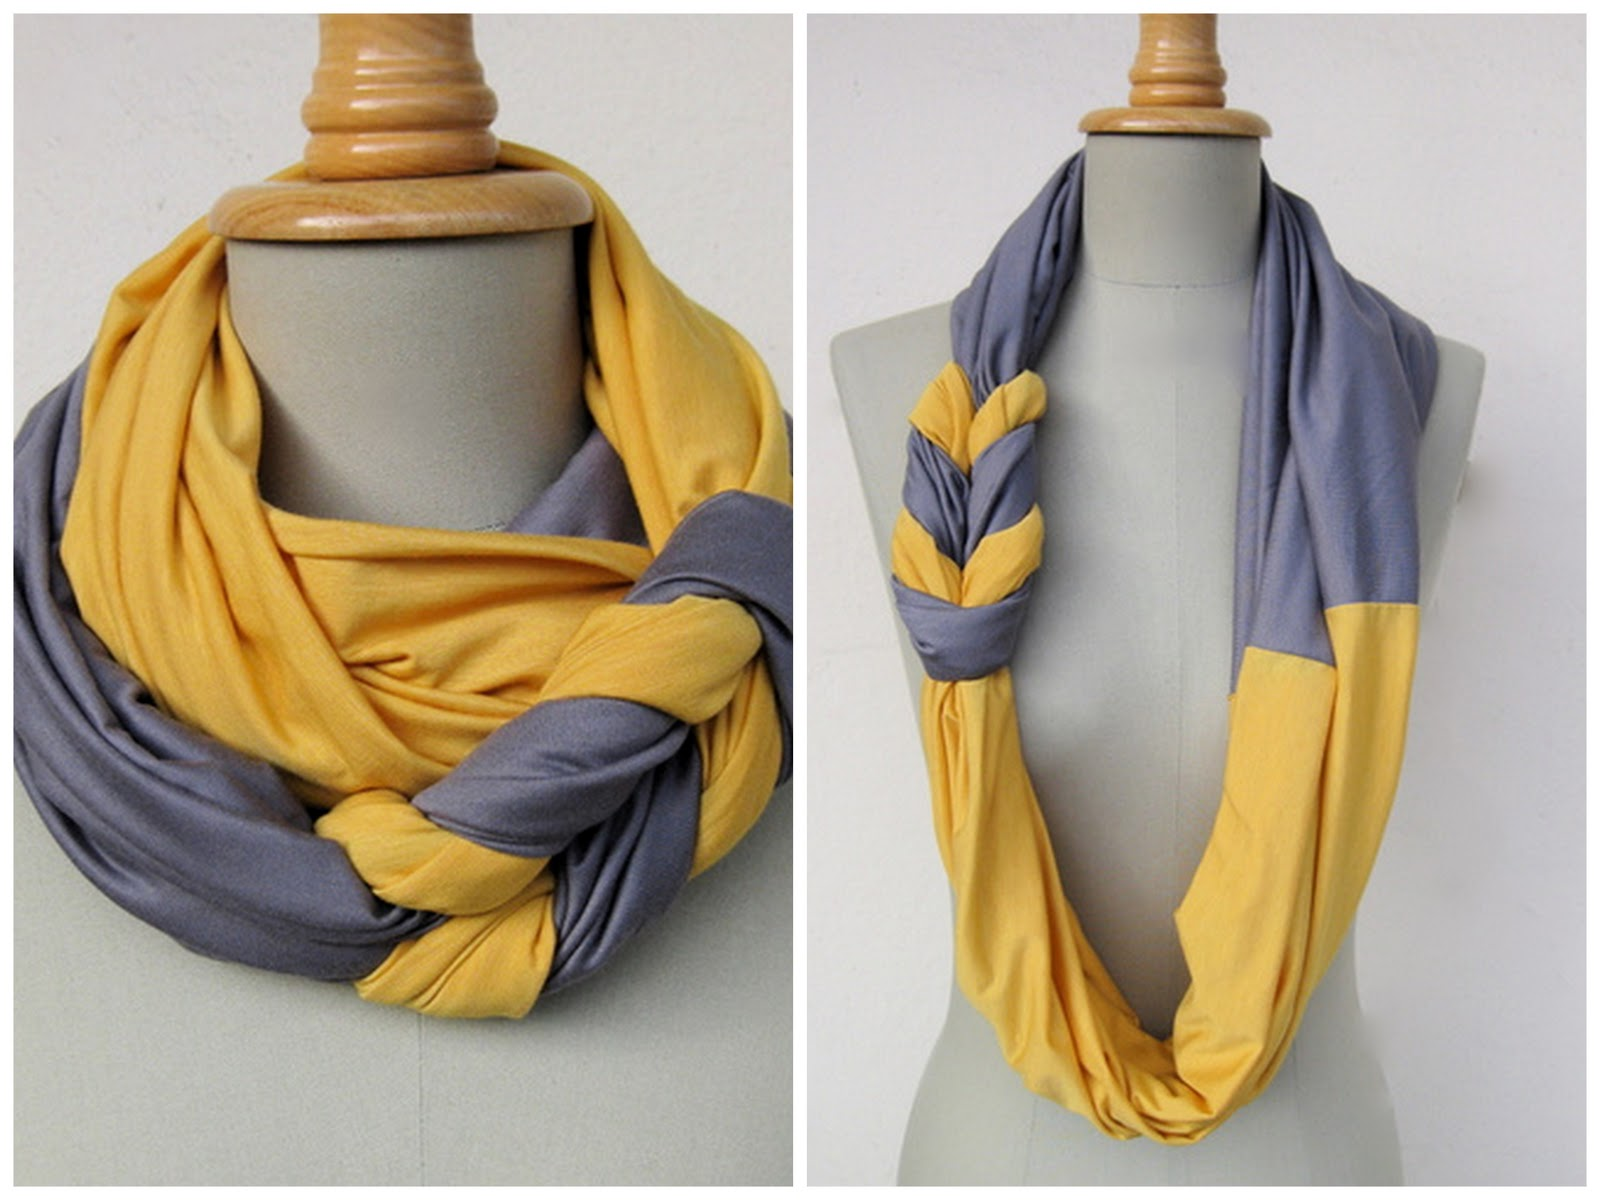 How to Recycle: Recycling Old T-Shirt into a Scarf